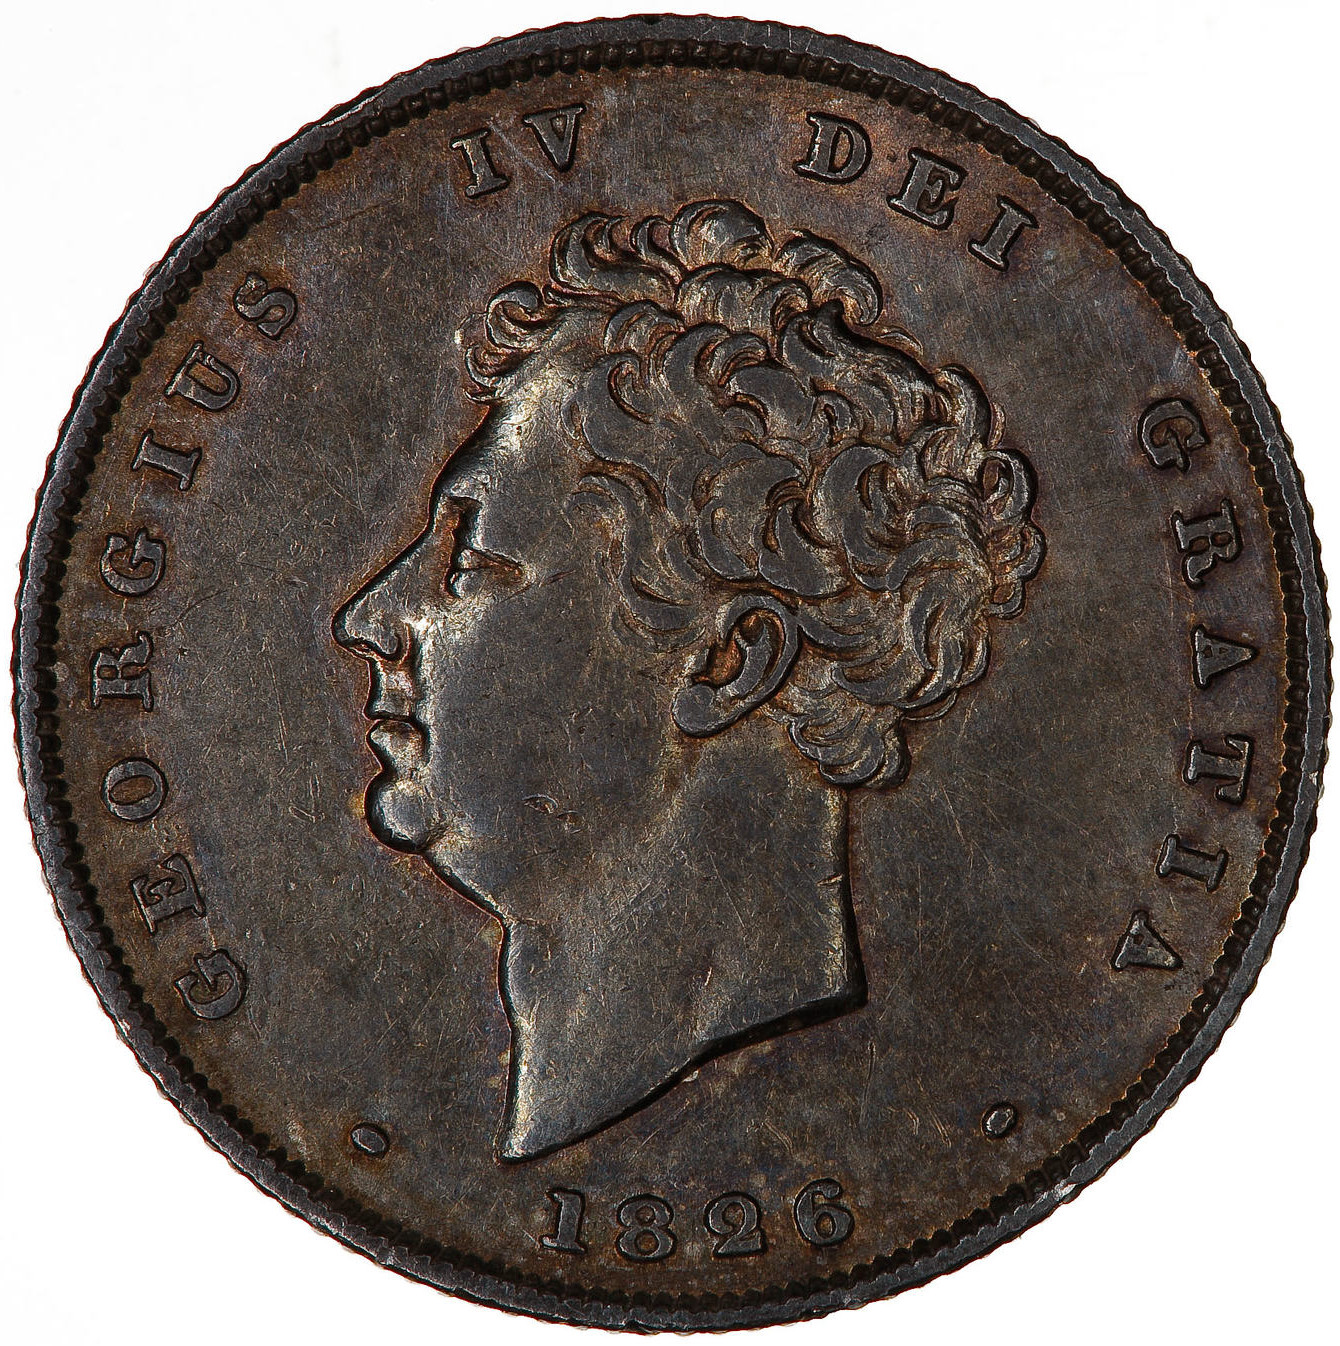 Shilling: Photo Coin - Shilling, George IV, Great Britain, 1826